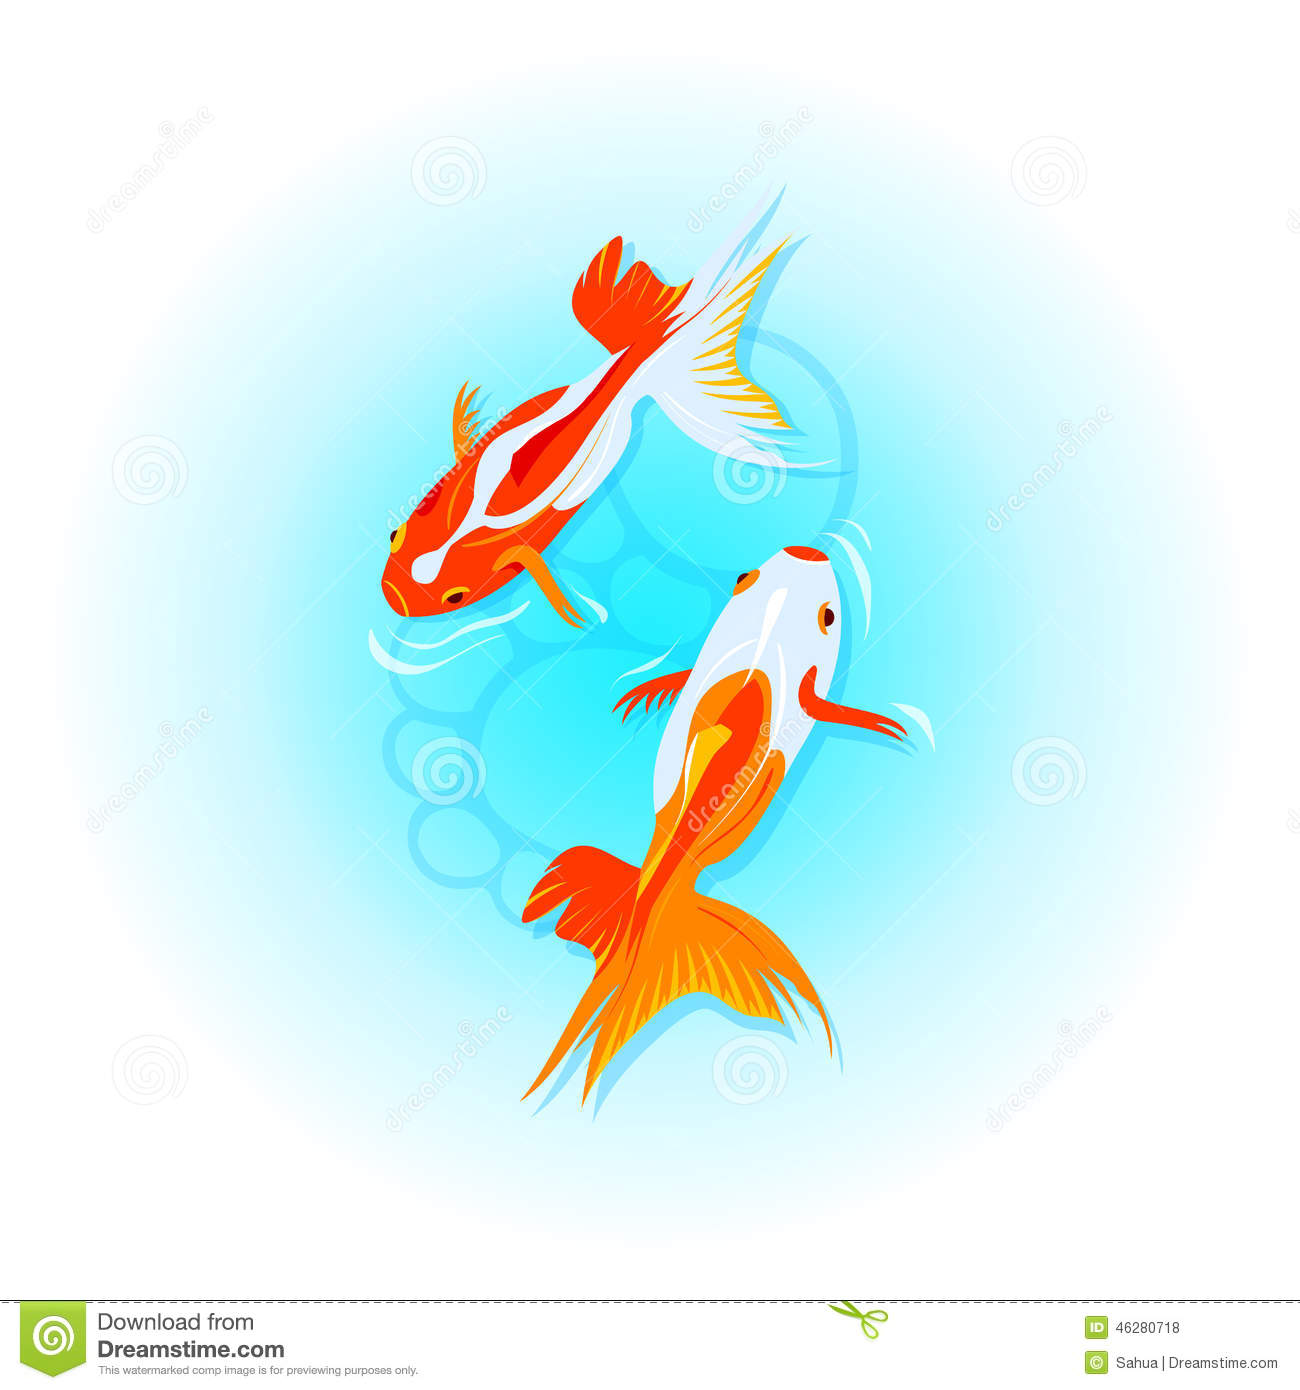 Peces de colores japoneses ilustraci n del vector for Imagenes de peces chinos